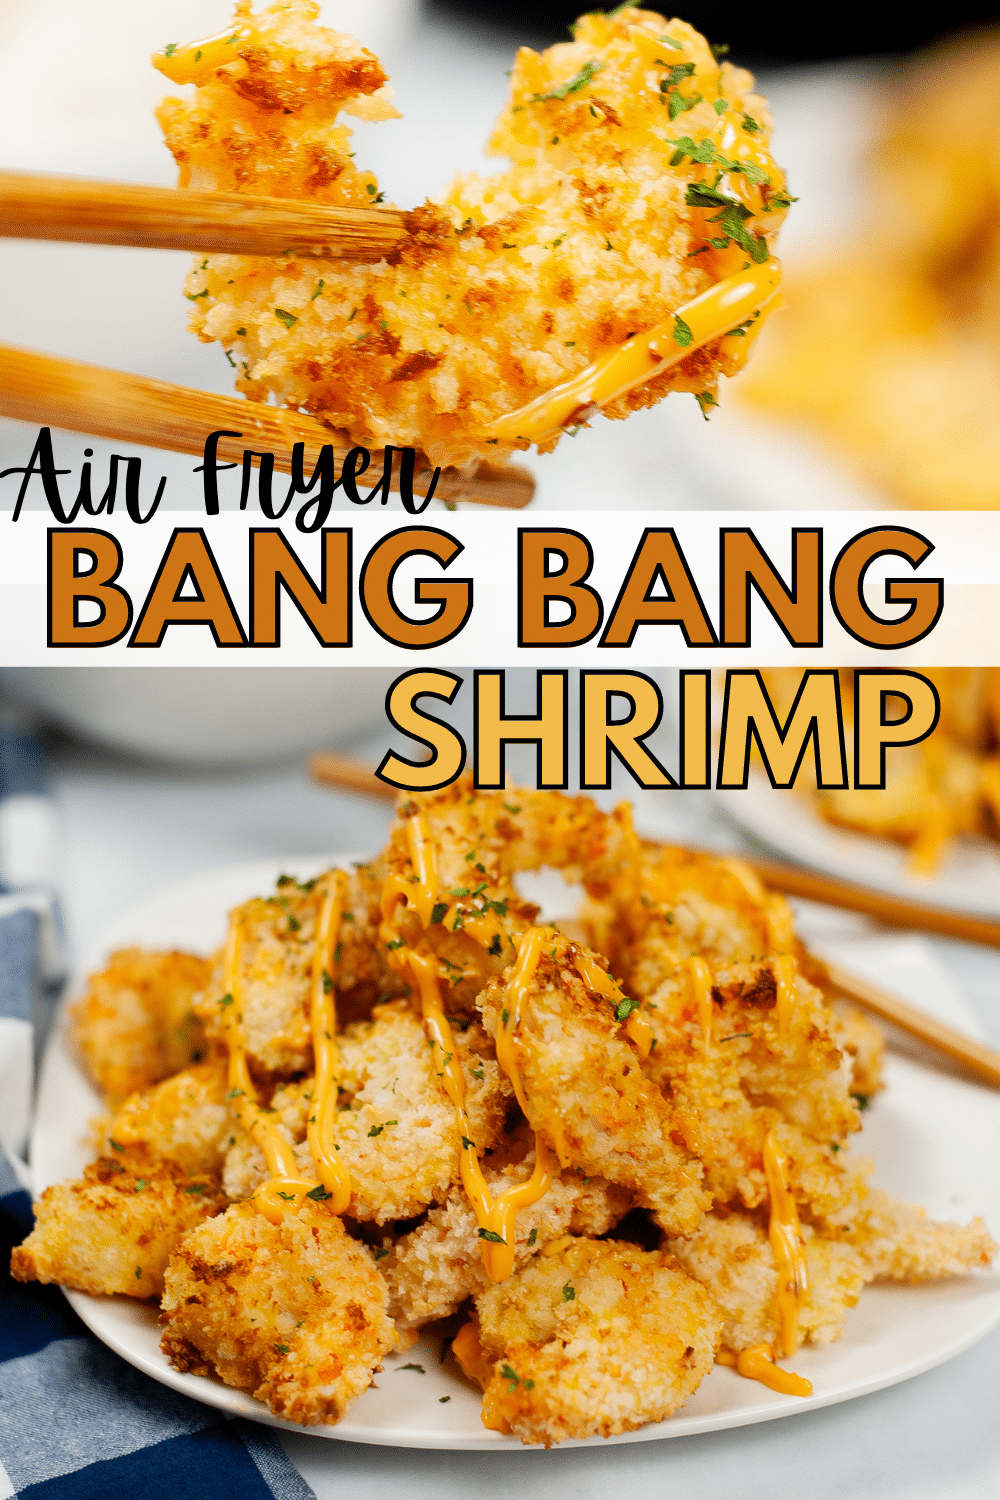 This Air Fryer Bang Bang Shrimp with a creamy spicy chili sauce makes a crowd-pleasing bite-sized appetizer or a delicious meal. #airfryer #bangbangshrimp #appetizer #dinner via @wondermomwannab